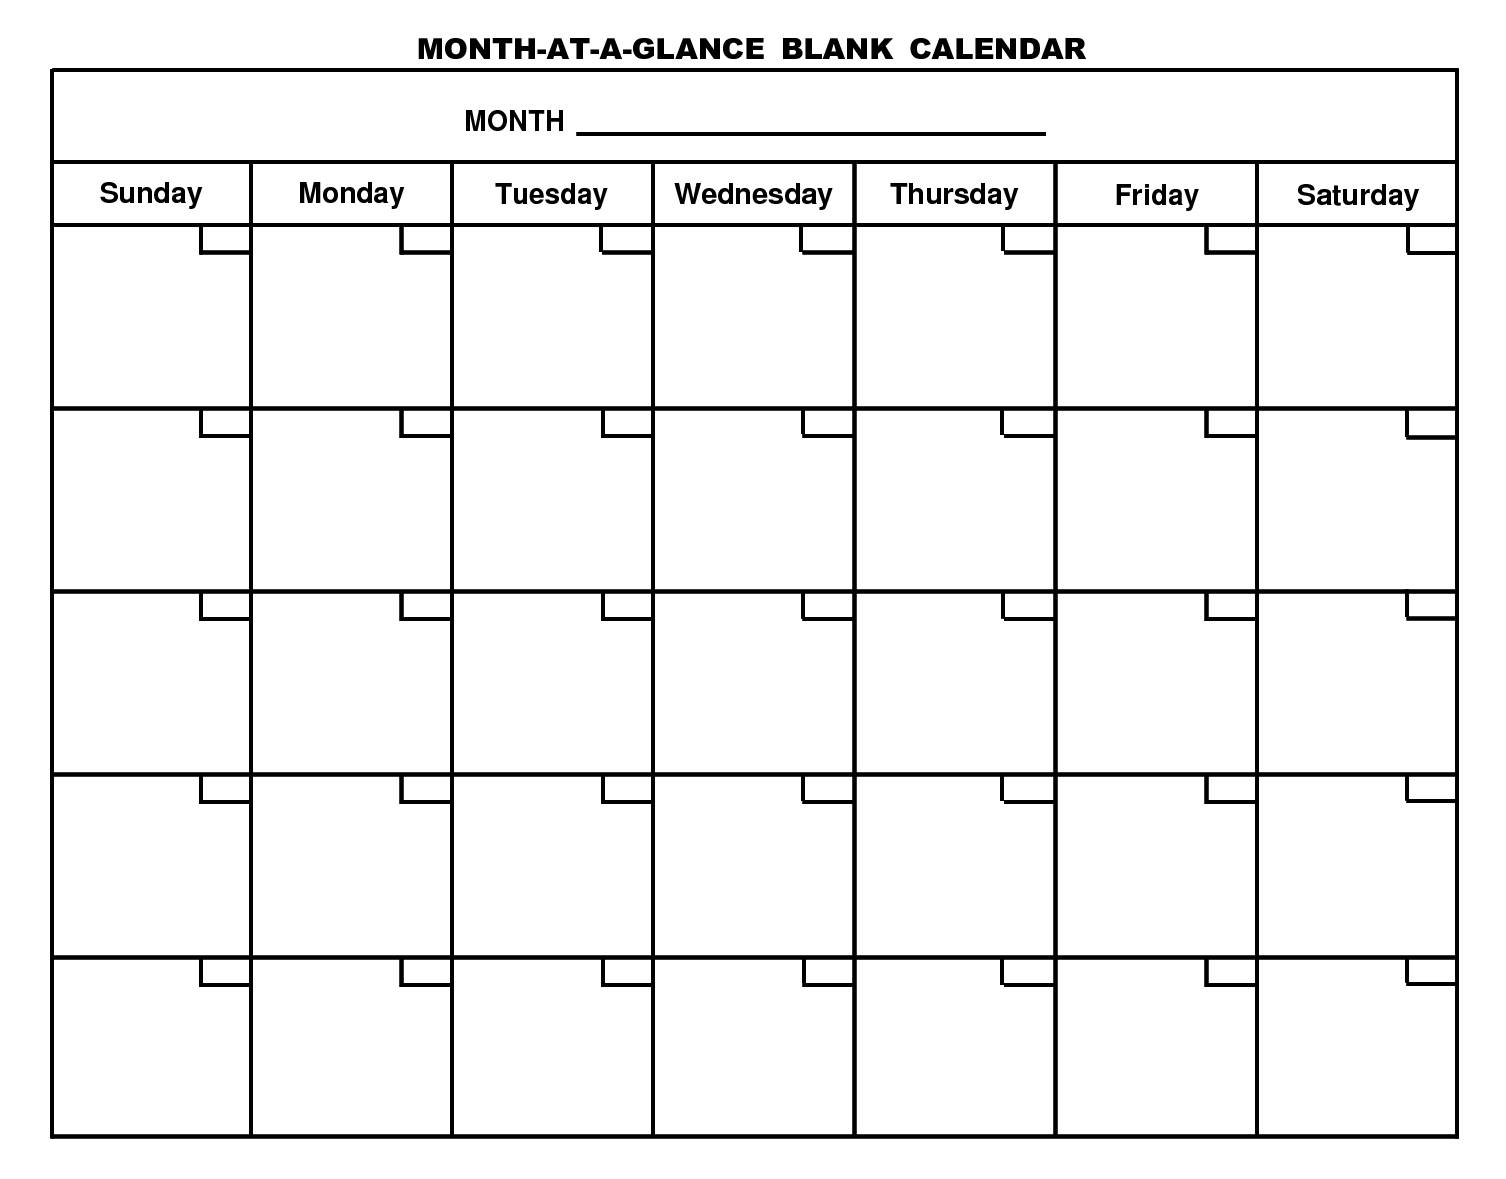 Free Printable Month At A Glance Blank Calendar (1506